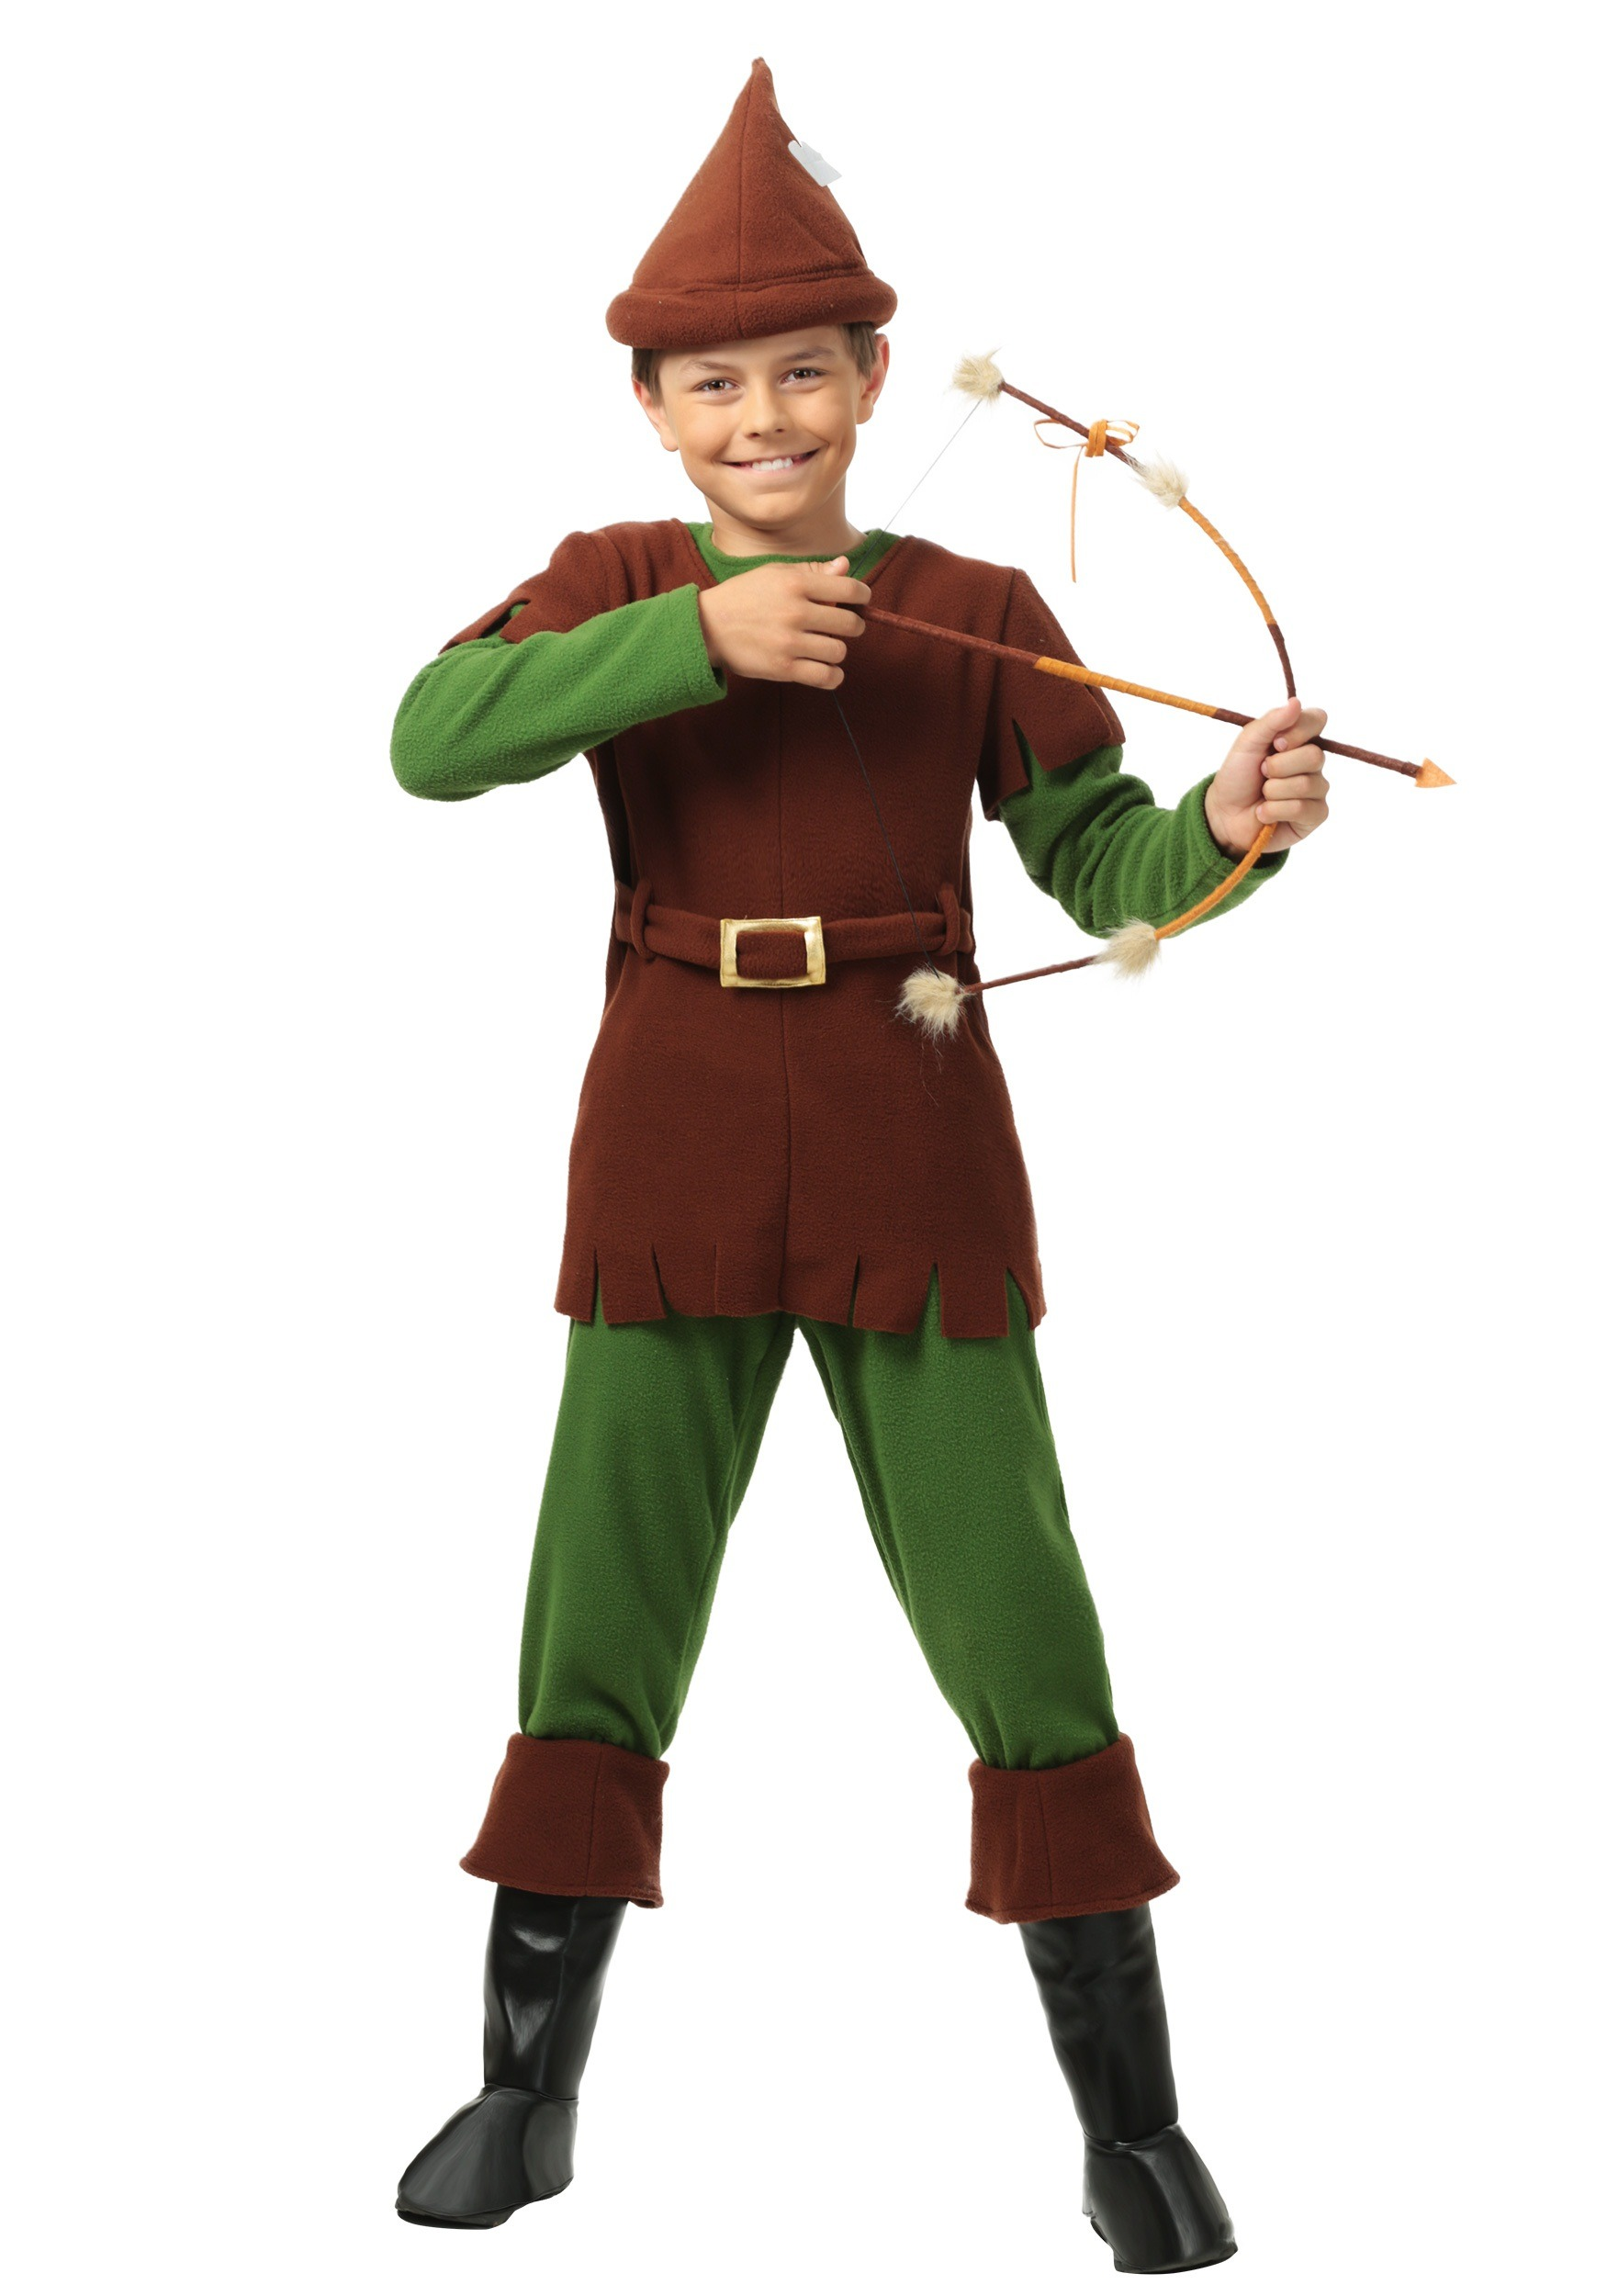 Little Robin Hood Boyu0027s Costume  sc 1 st  Halloween Costumes & Little Robin Hood Boyu0027s Costume